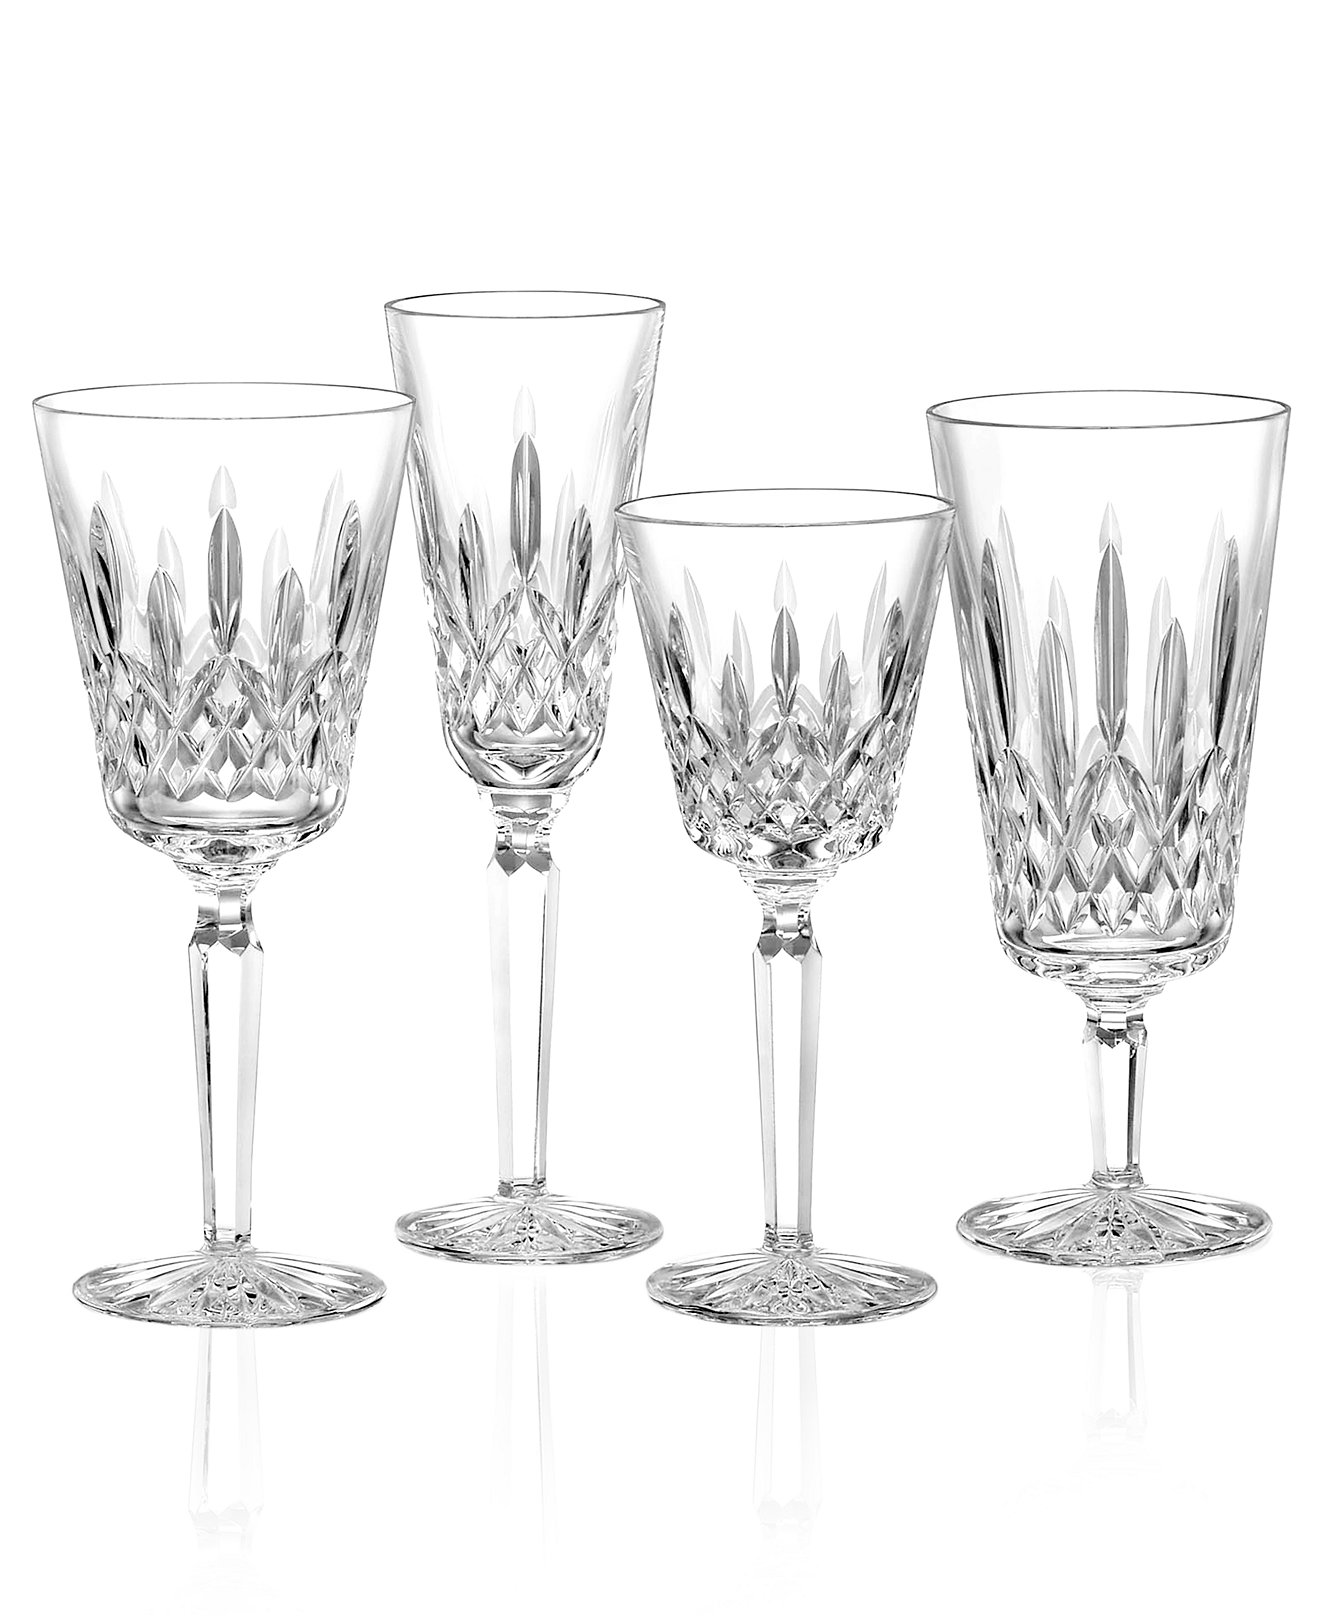 Brilliant waterford lismore with lismore goblet design glass waterford lismore